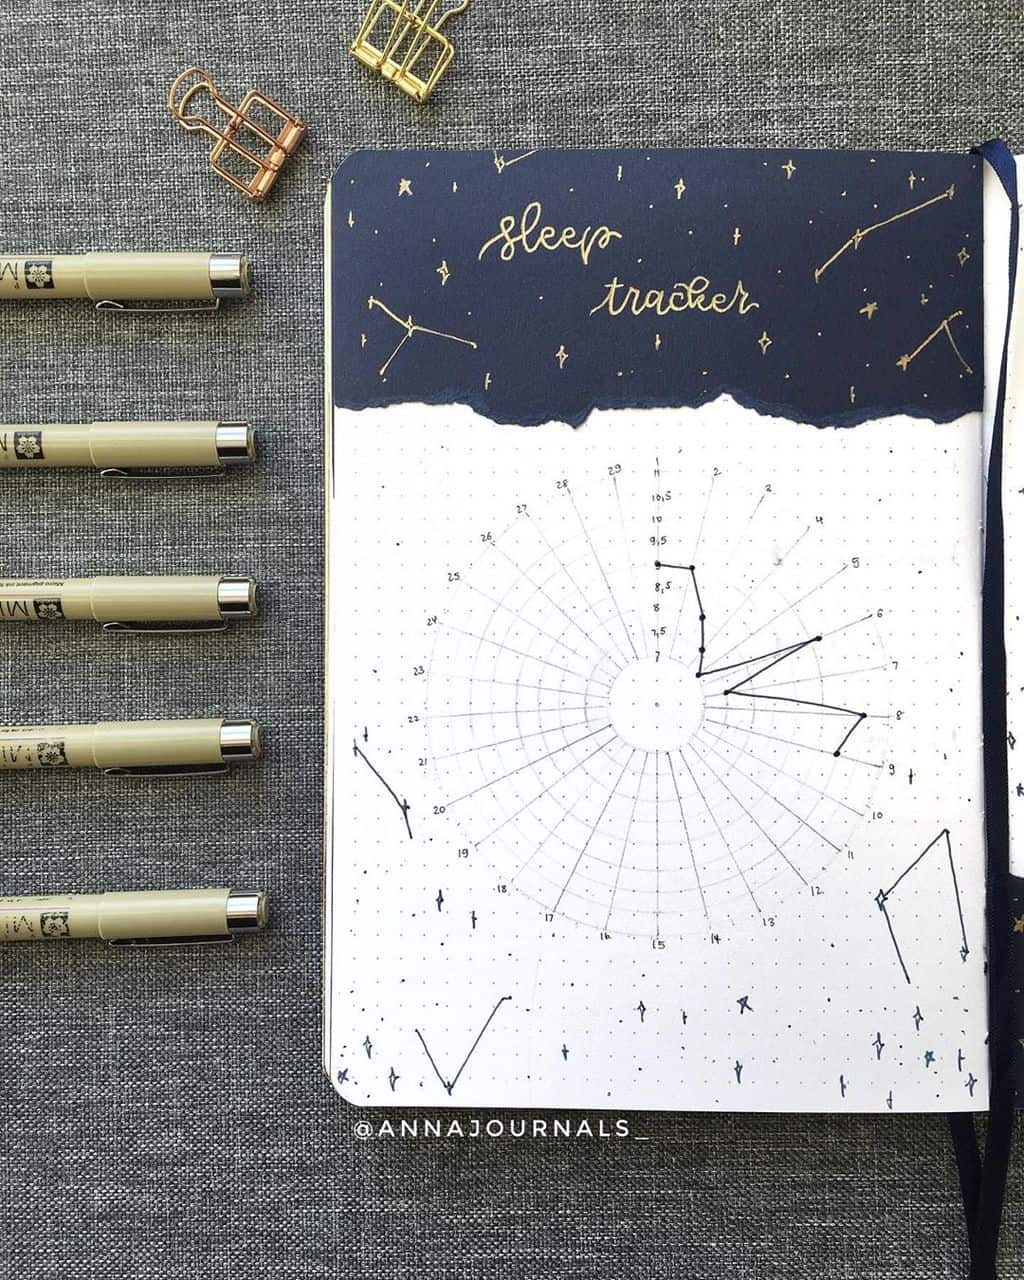 Bullet Journal For Mental Health - sleep tracker by @annajournals | Masha Plans